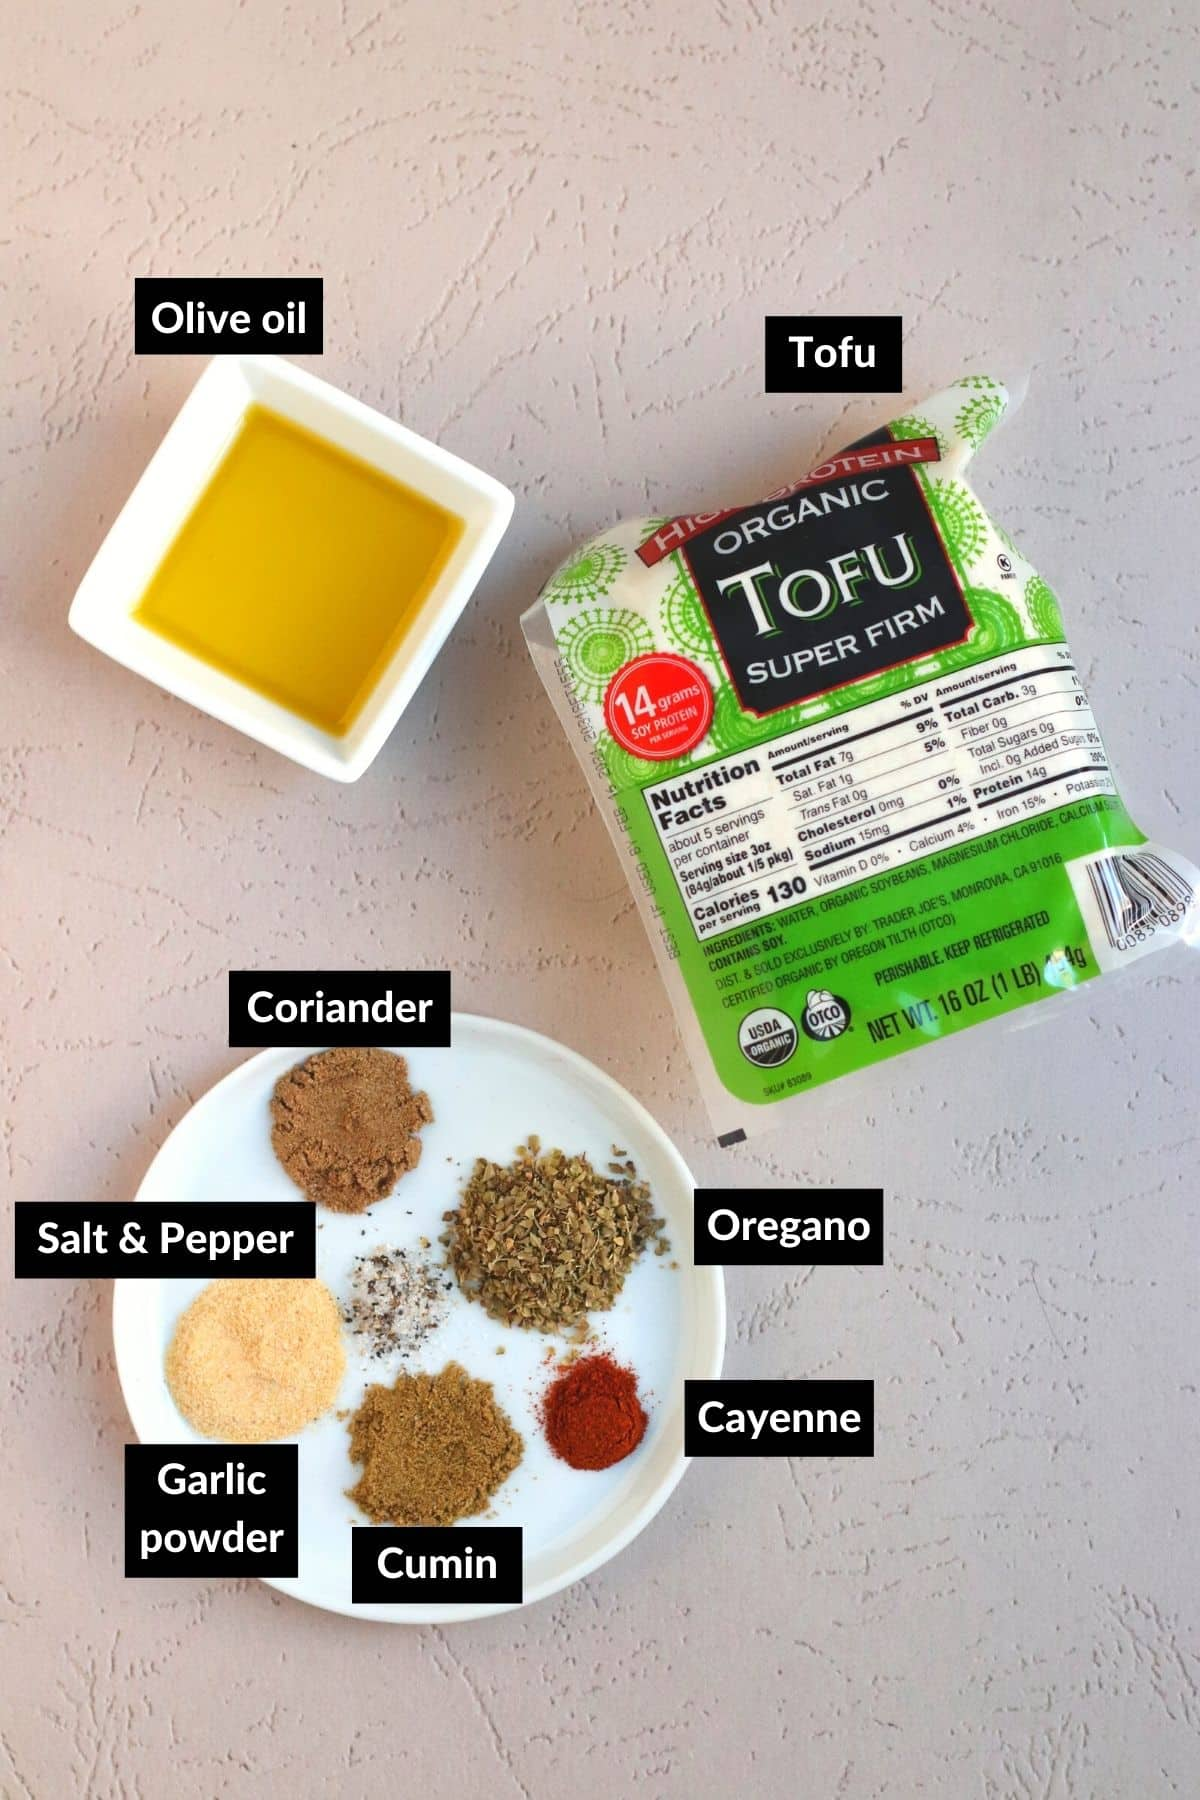 Ingredients for making the tofu filling